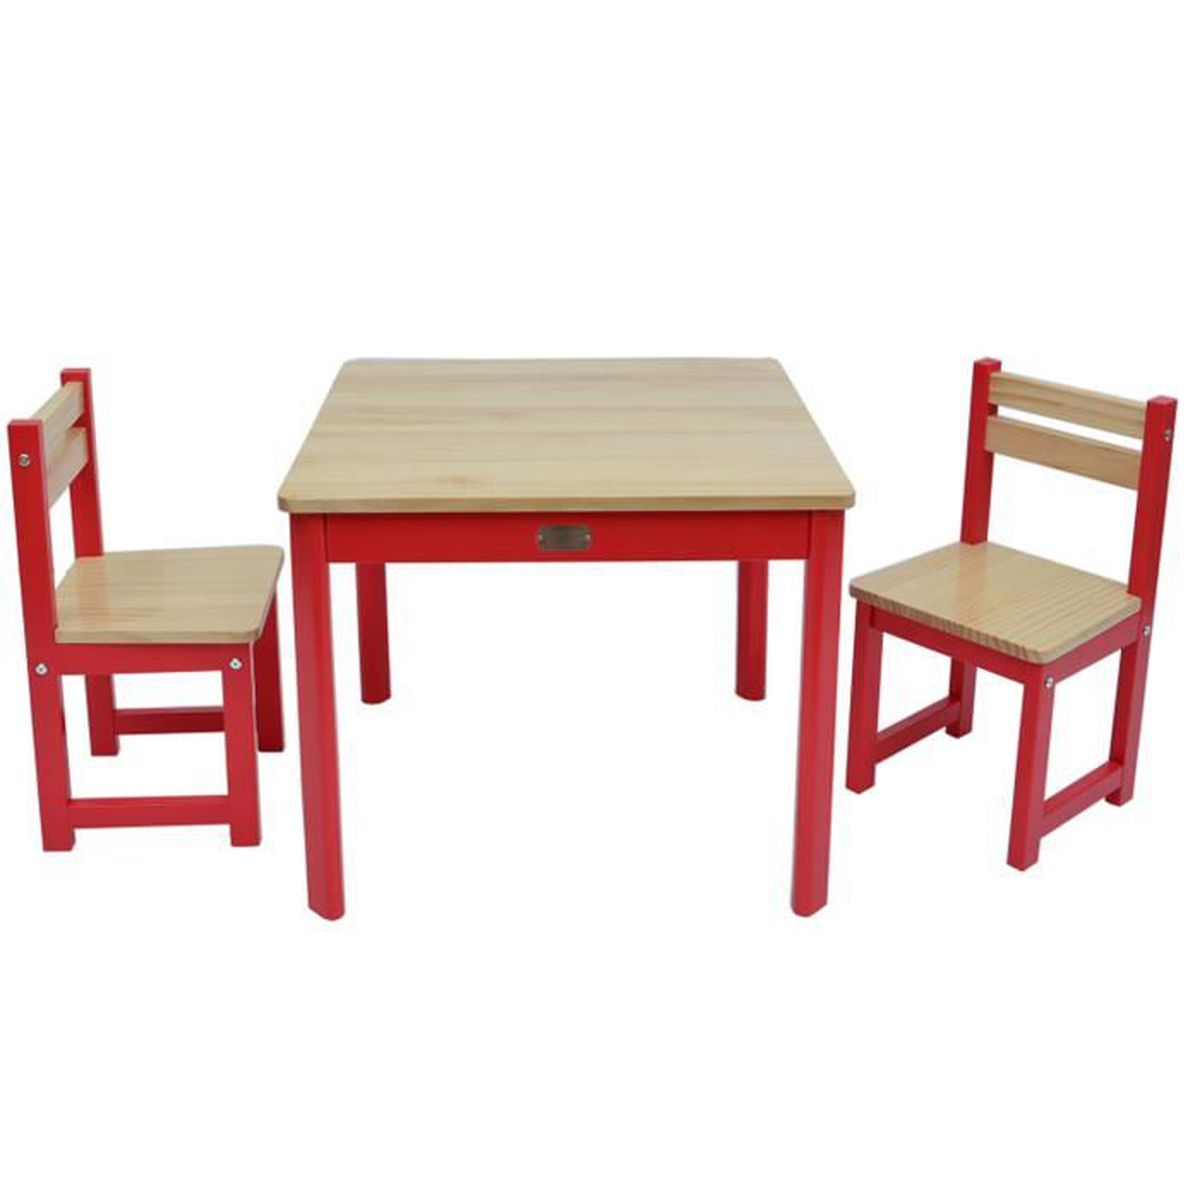 ensemble table et 2 chaises pour enfant en bois coloris rouge achat vente tour de lit b b. Black Bedroom Furniture Sets. Home Design Ideas